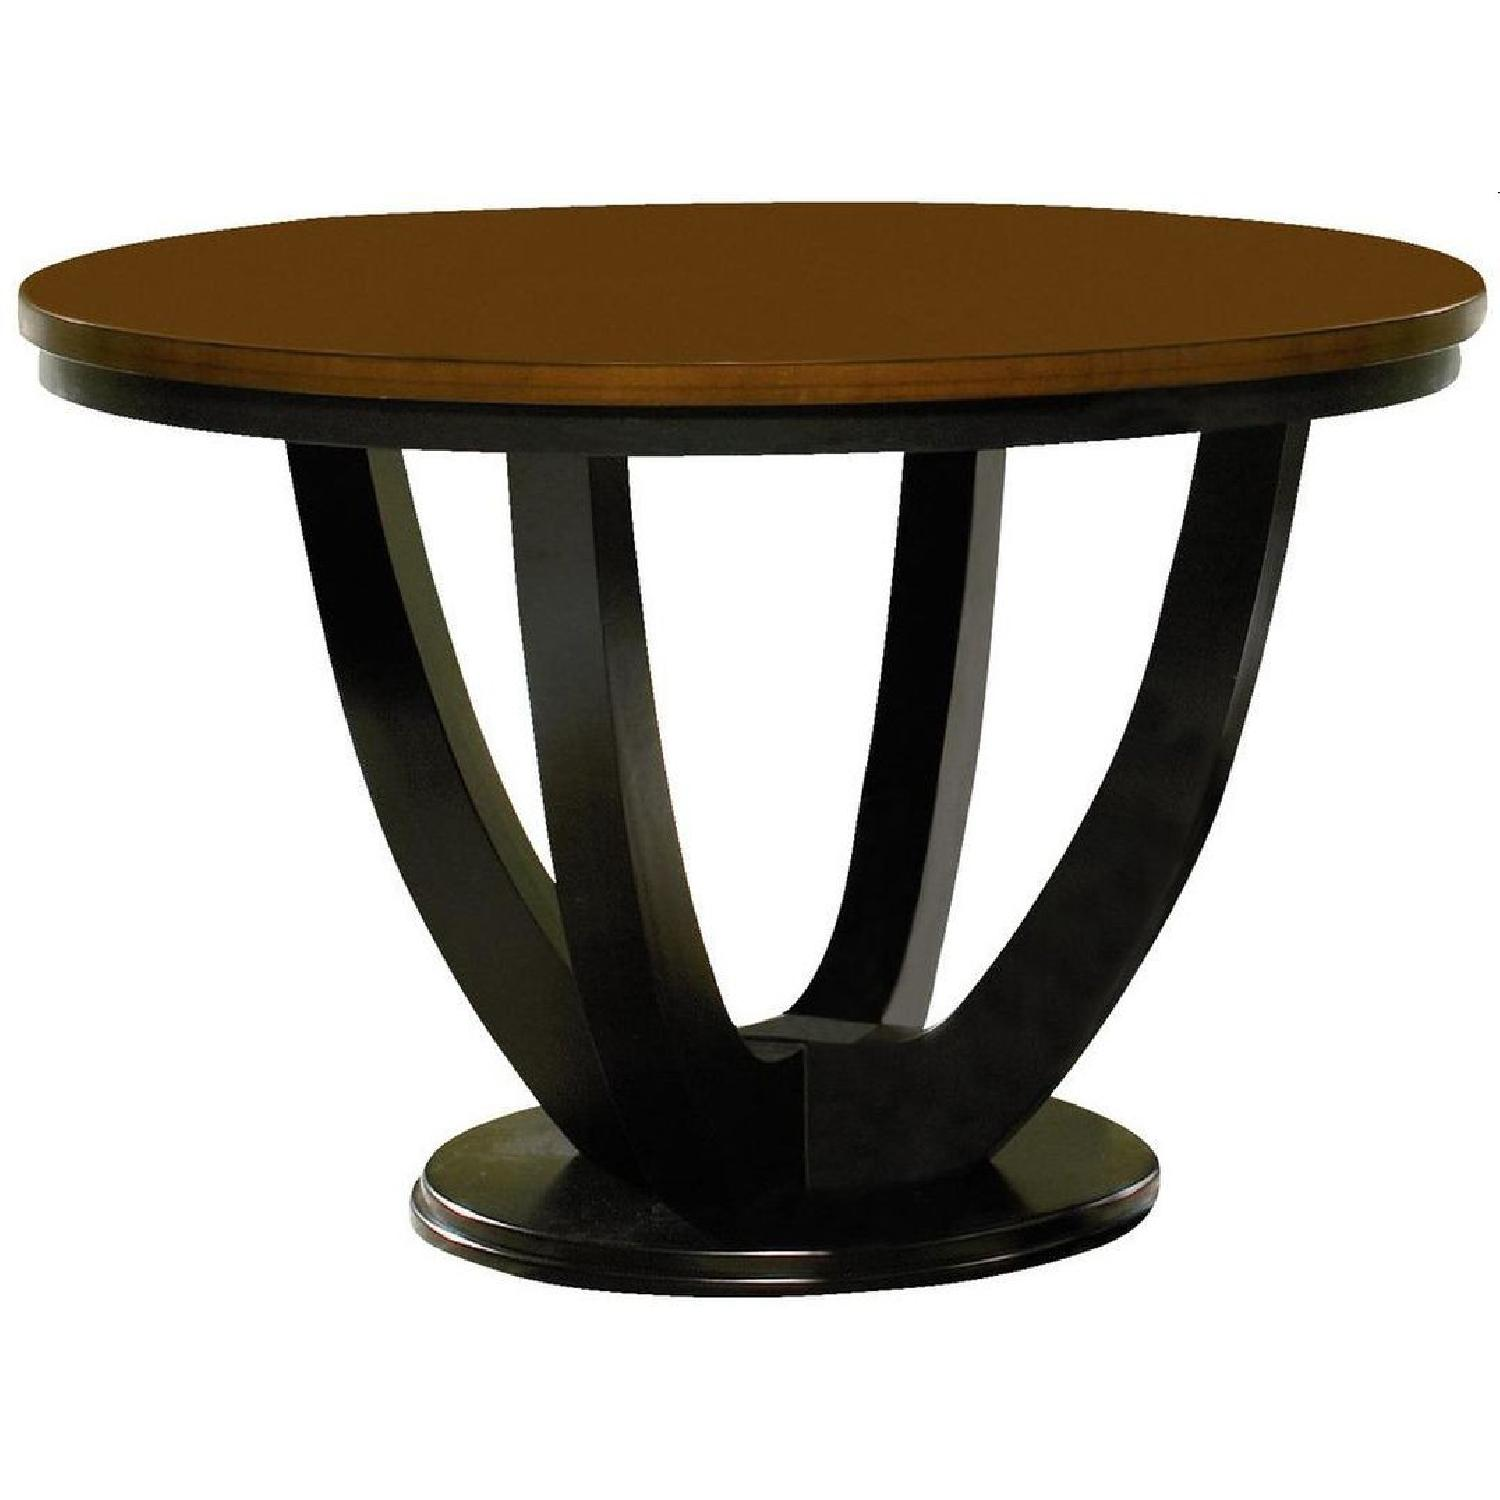 Modern Round Table in Amber w/ Black Base - image-0